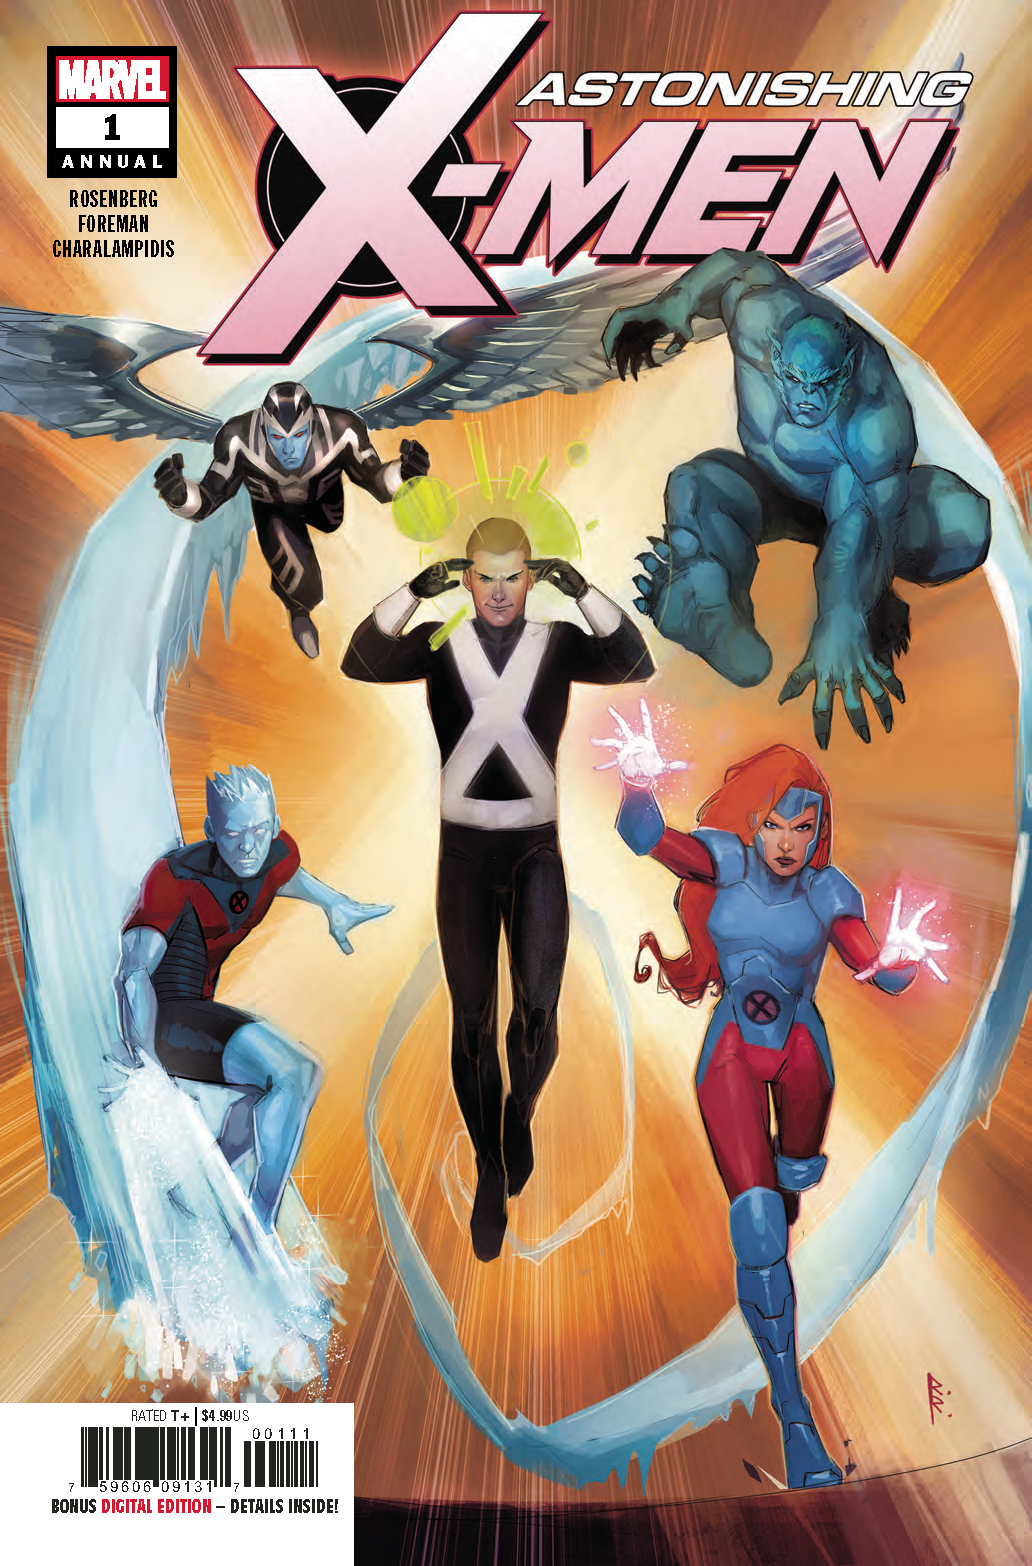 ASTONISHING X-MEN ANNUAL #1